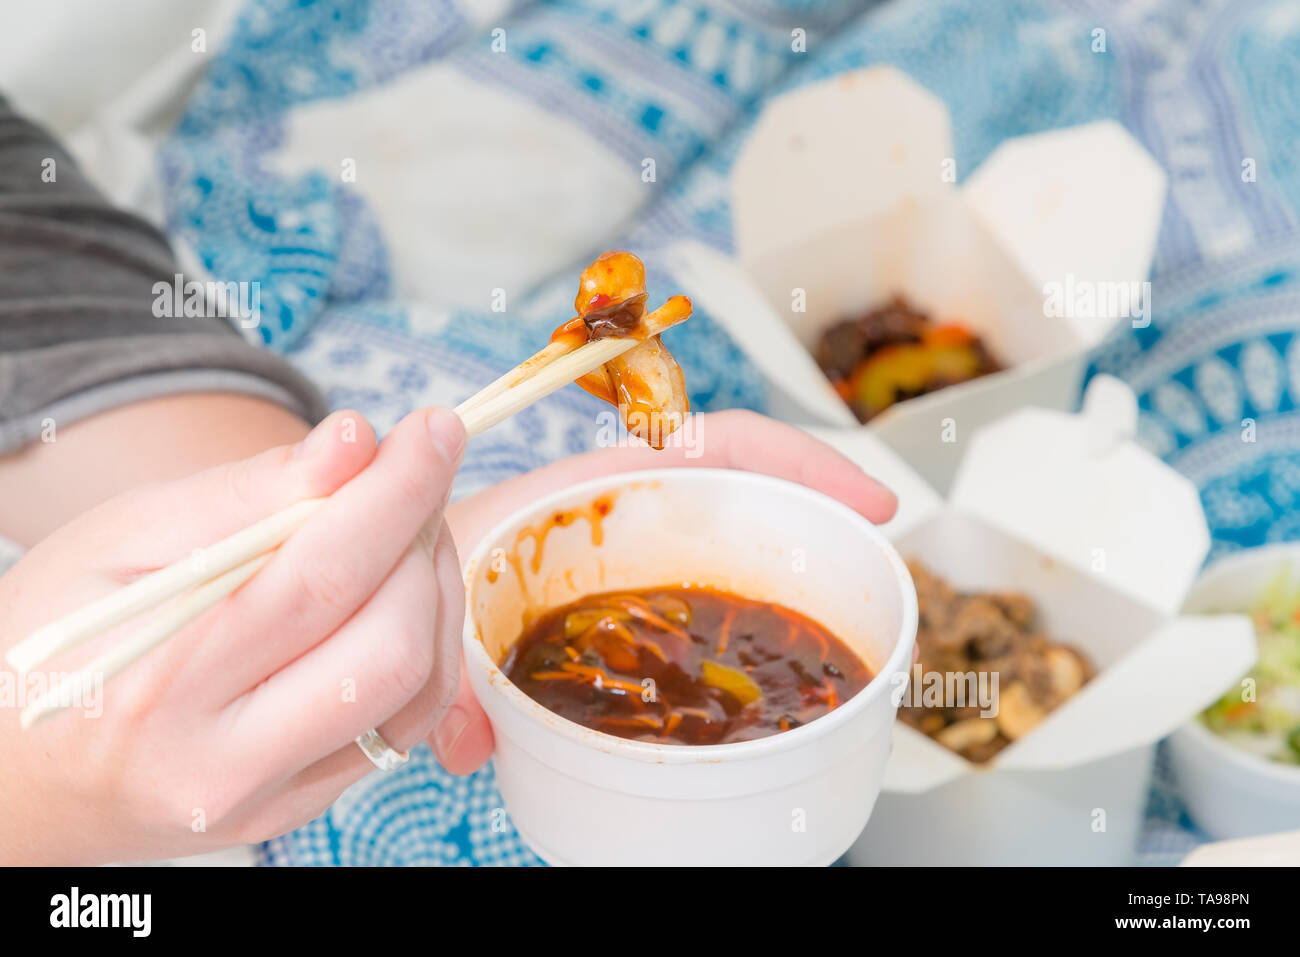 Eating Chinese take away food with chop sticks at home with bed sheets in the background. Spicy asian food in white box - salad, souse, beef, chicken  - Stock Image